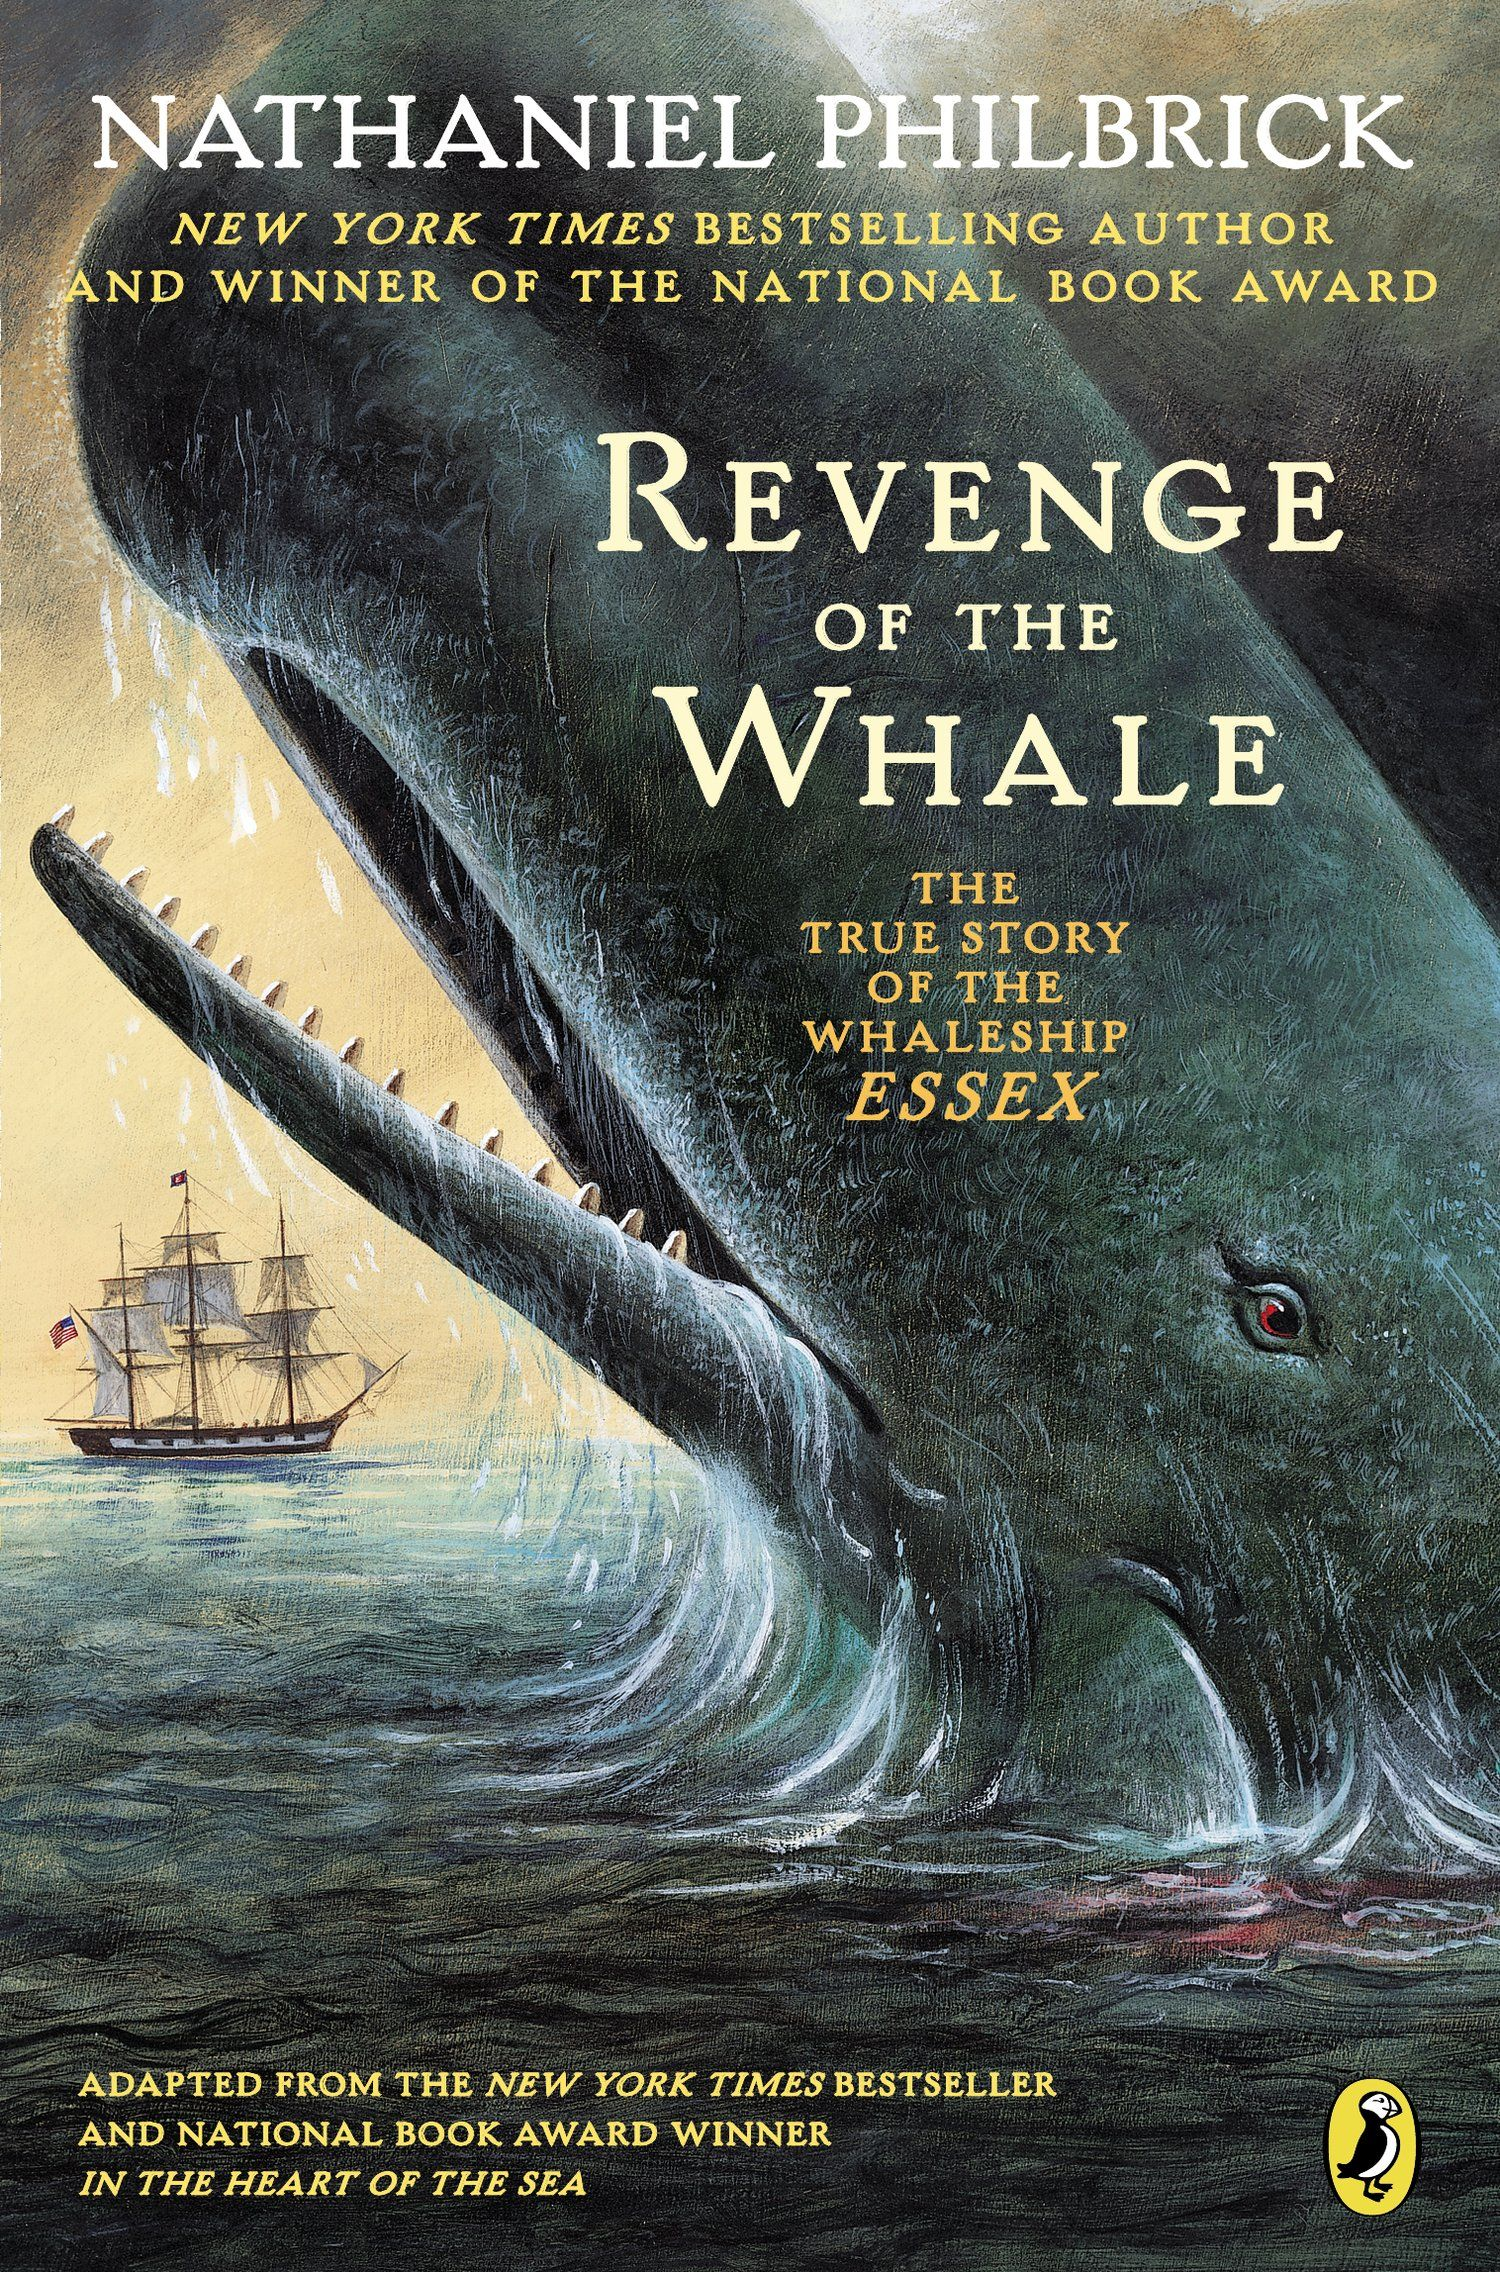 Herman Melville's Moby Dick was based on a true story. In 1820, the  whaleship Essex was stove in by a whale in the Pacific Ocean.